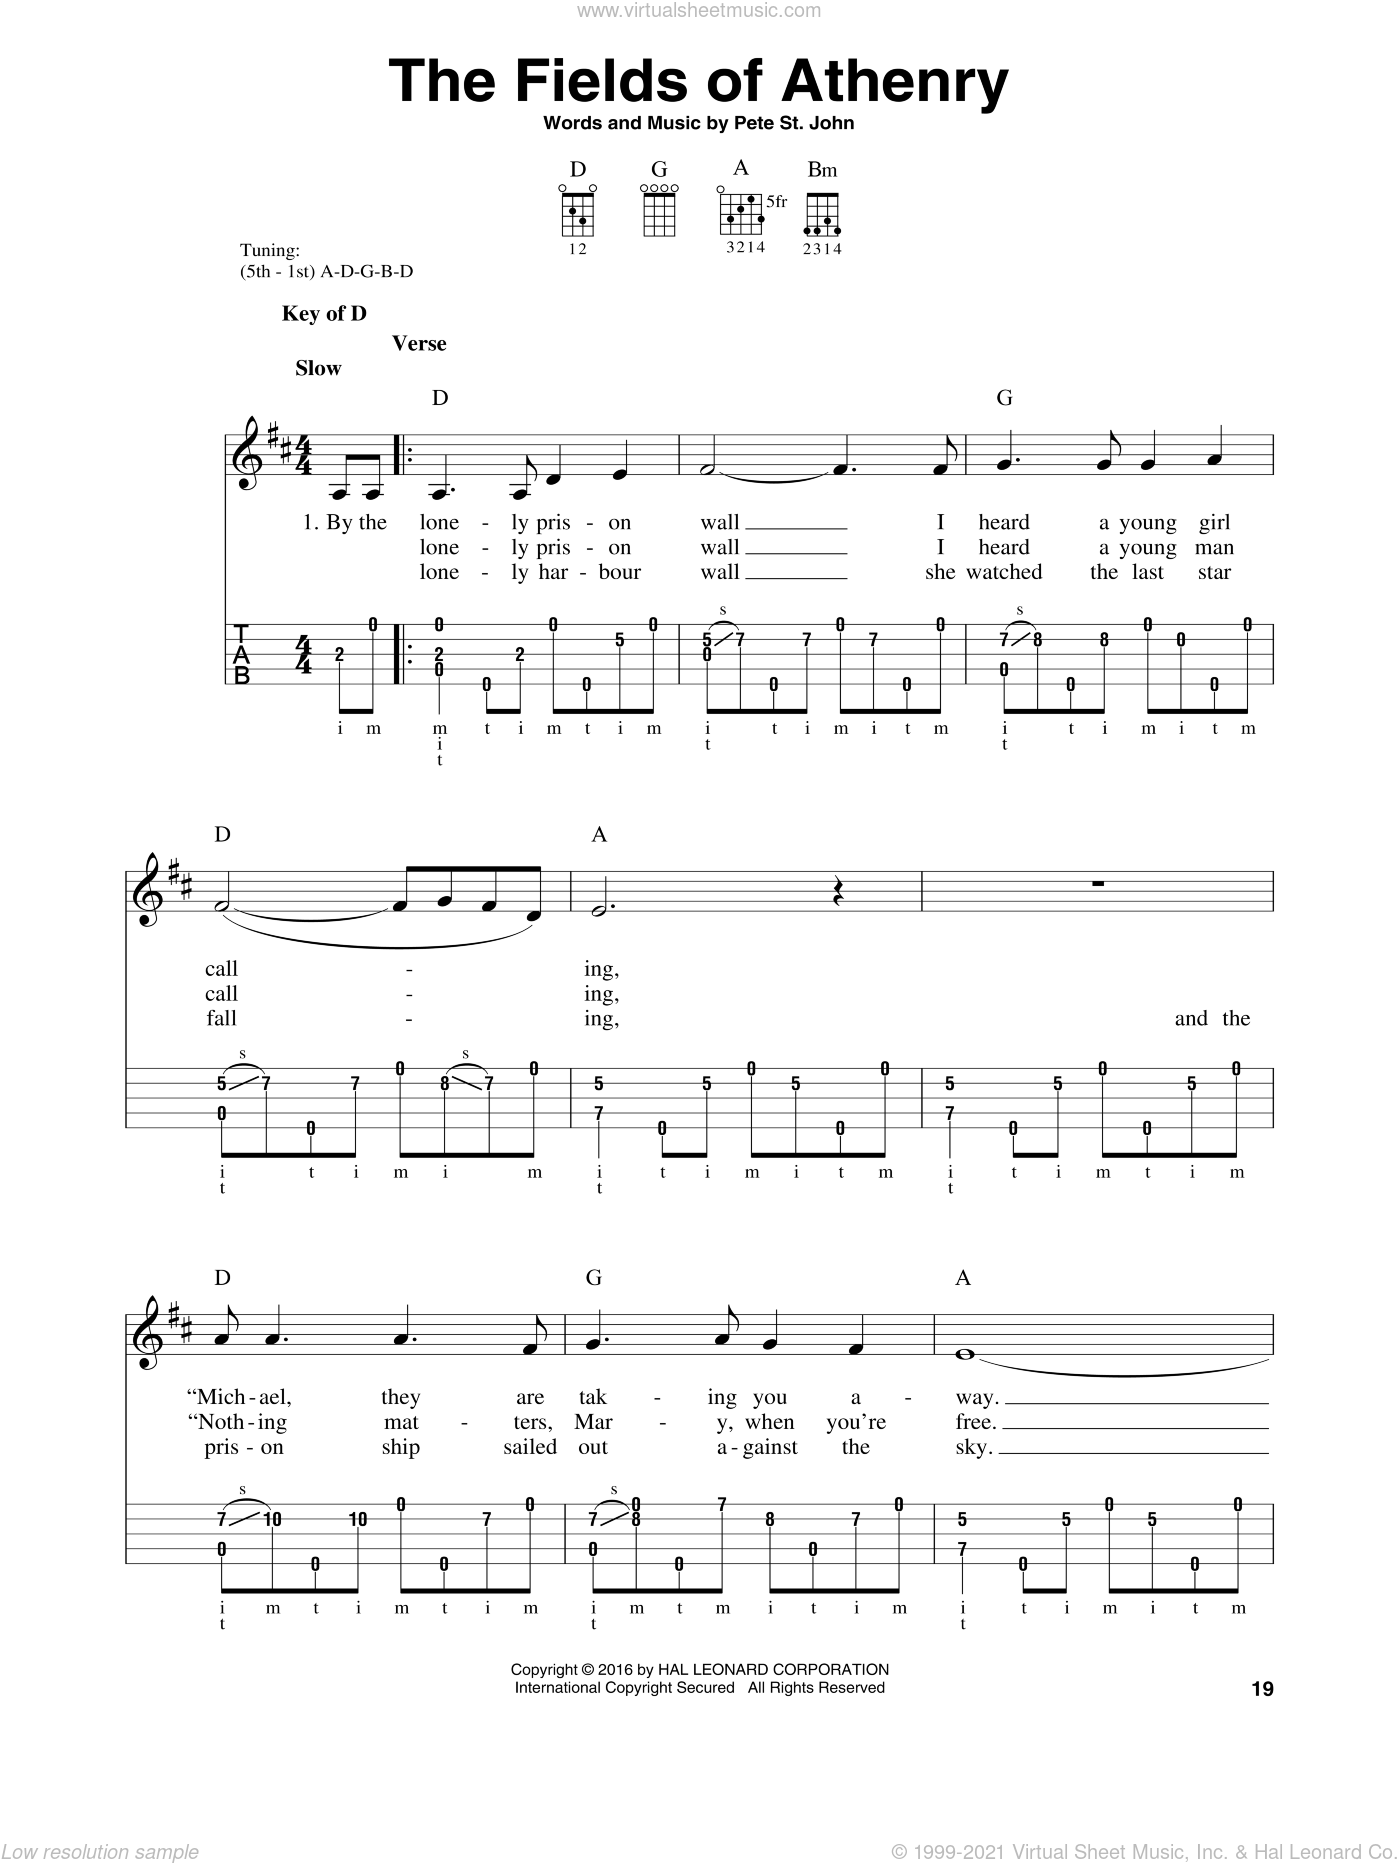 The Fields Of Athenry sheet music for banjo solo by Pete St. John, intermediate